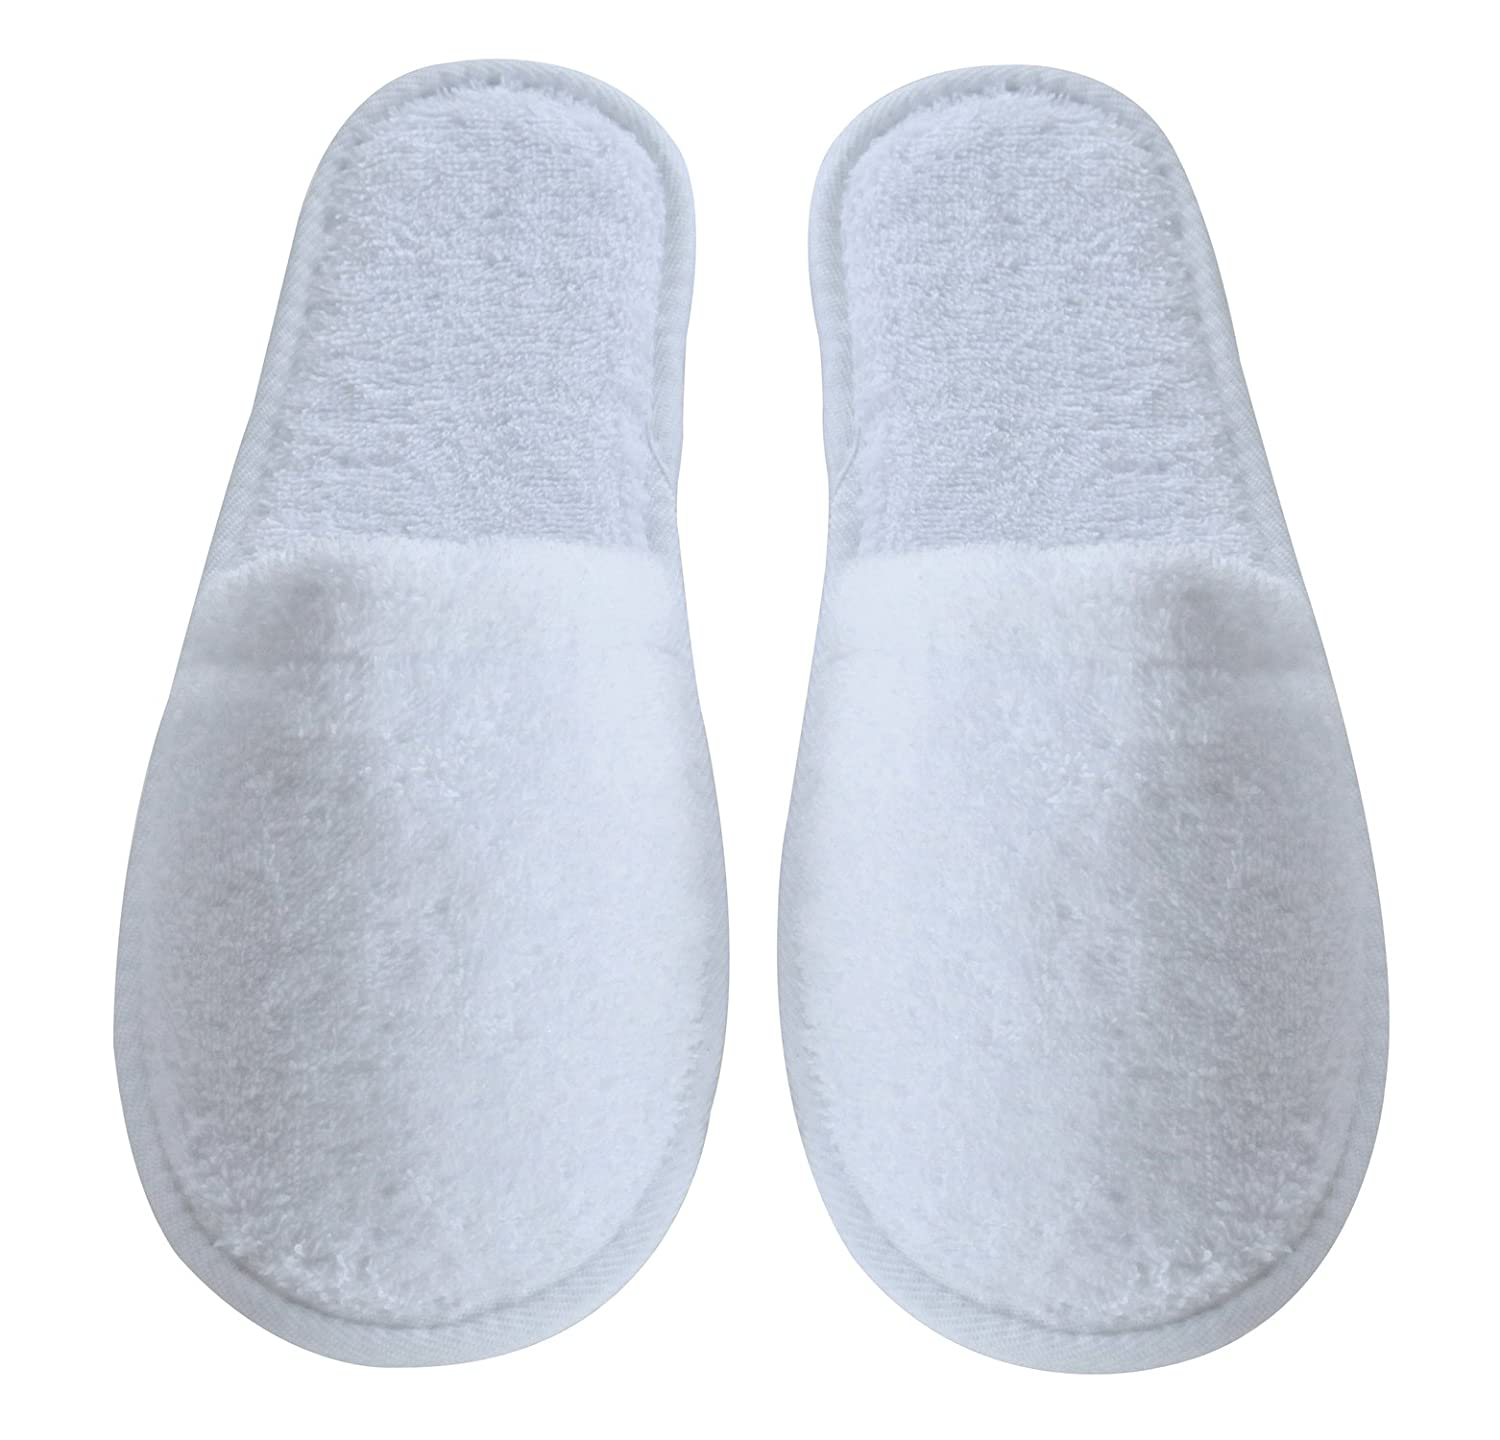 Arus Men's Turkish Terry Cotton Spa Slippers, One Size Fits Most andao one size fits all